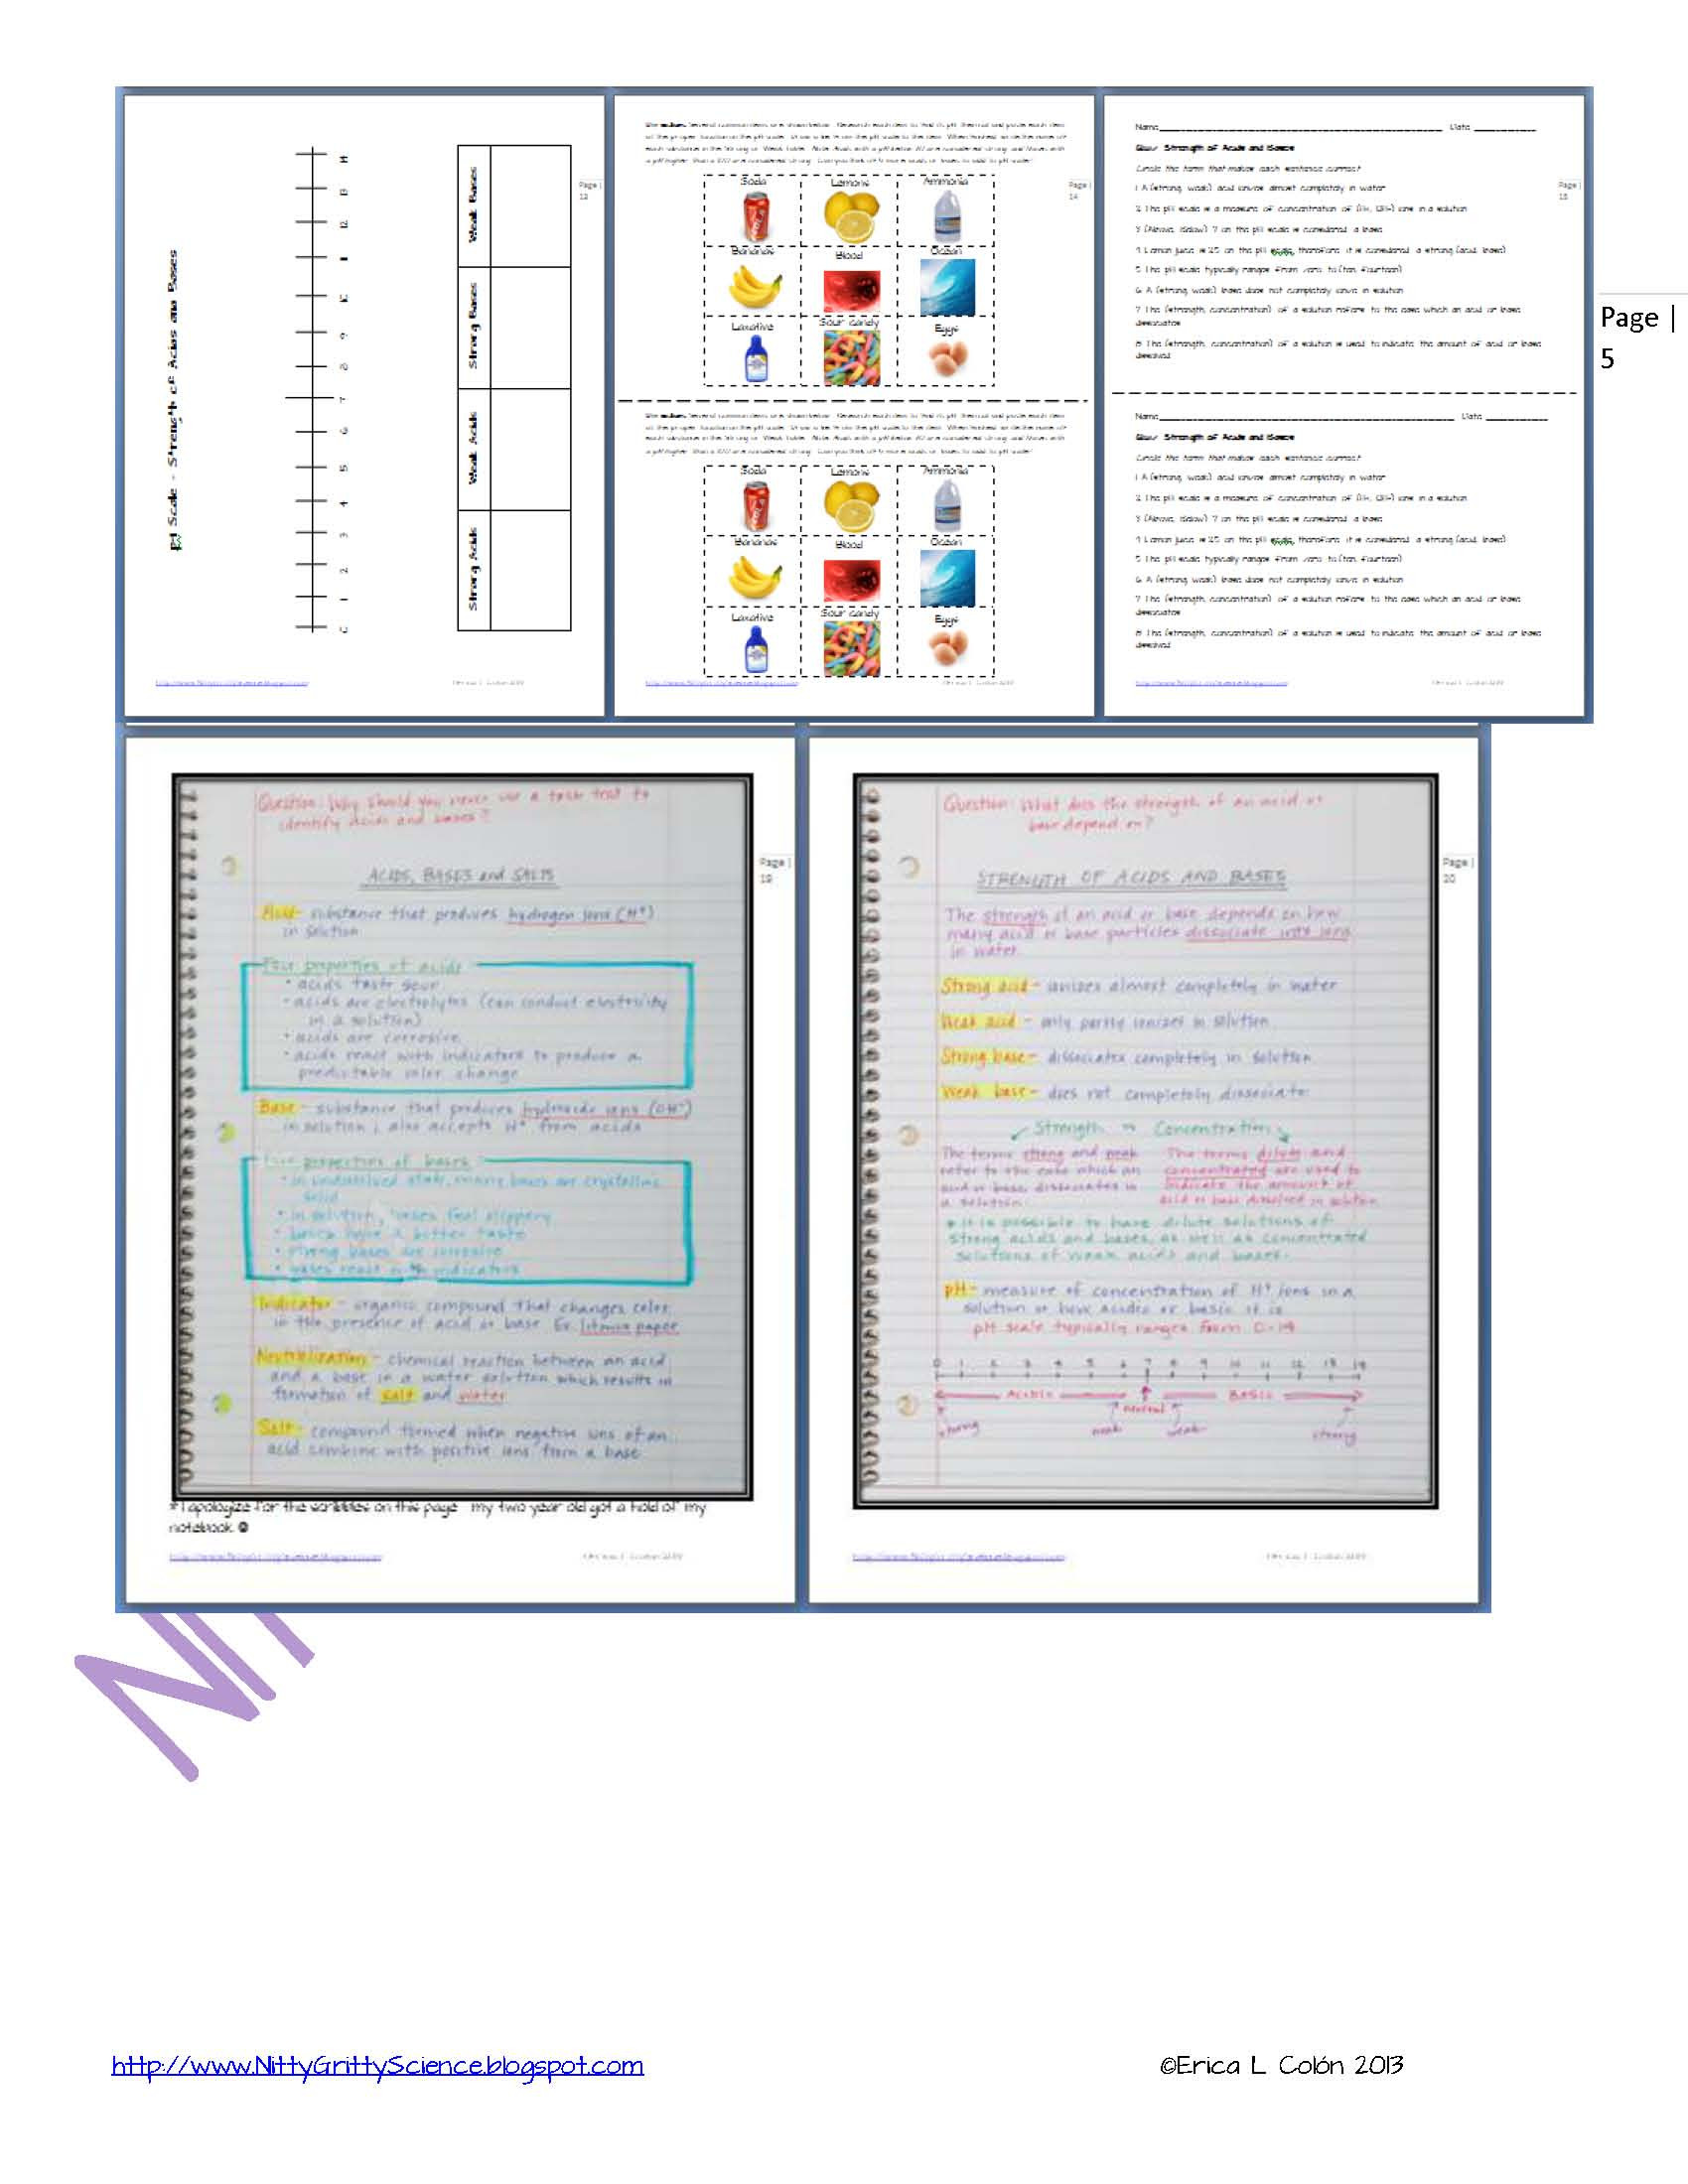 Solutions Acids and Bases Worksheet solutions Acids and Bases